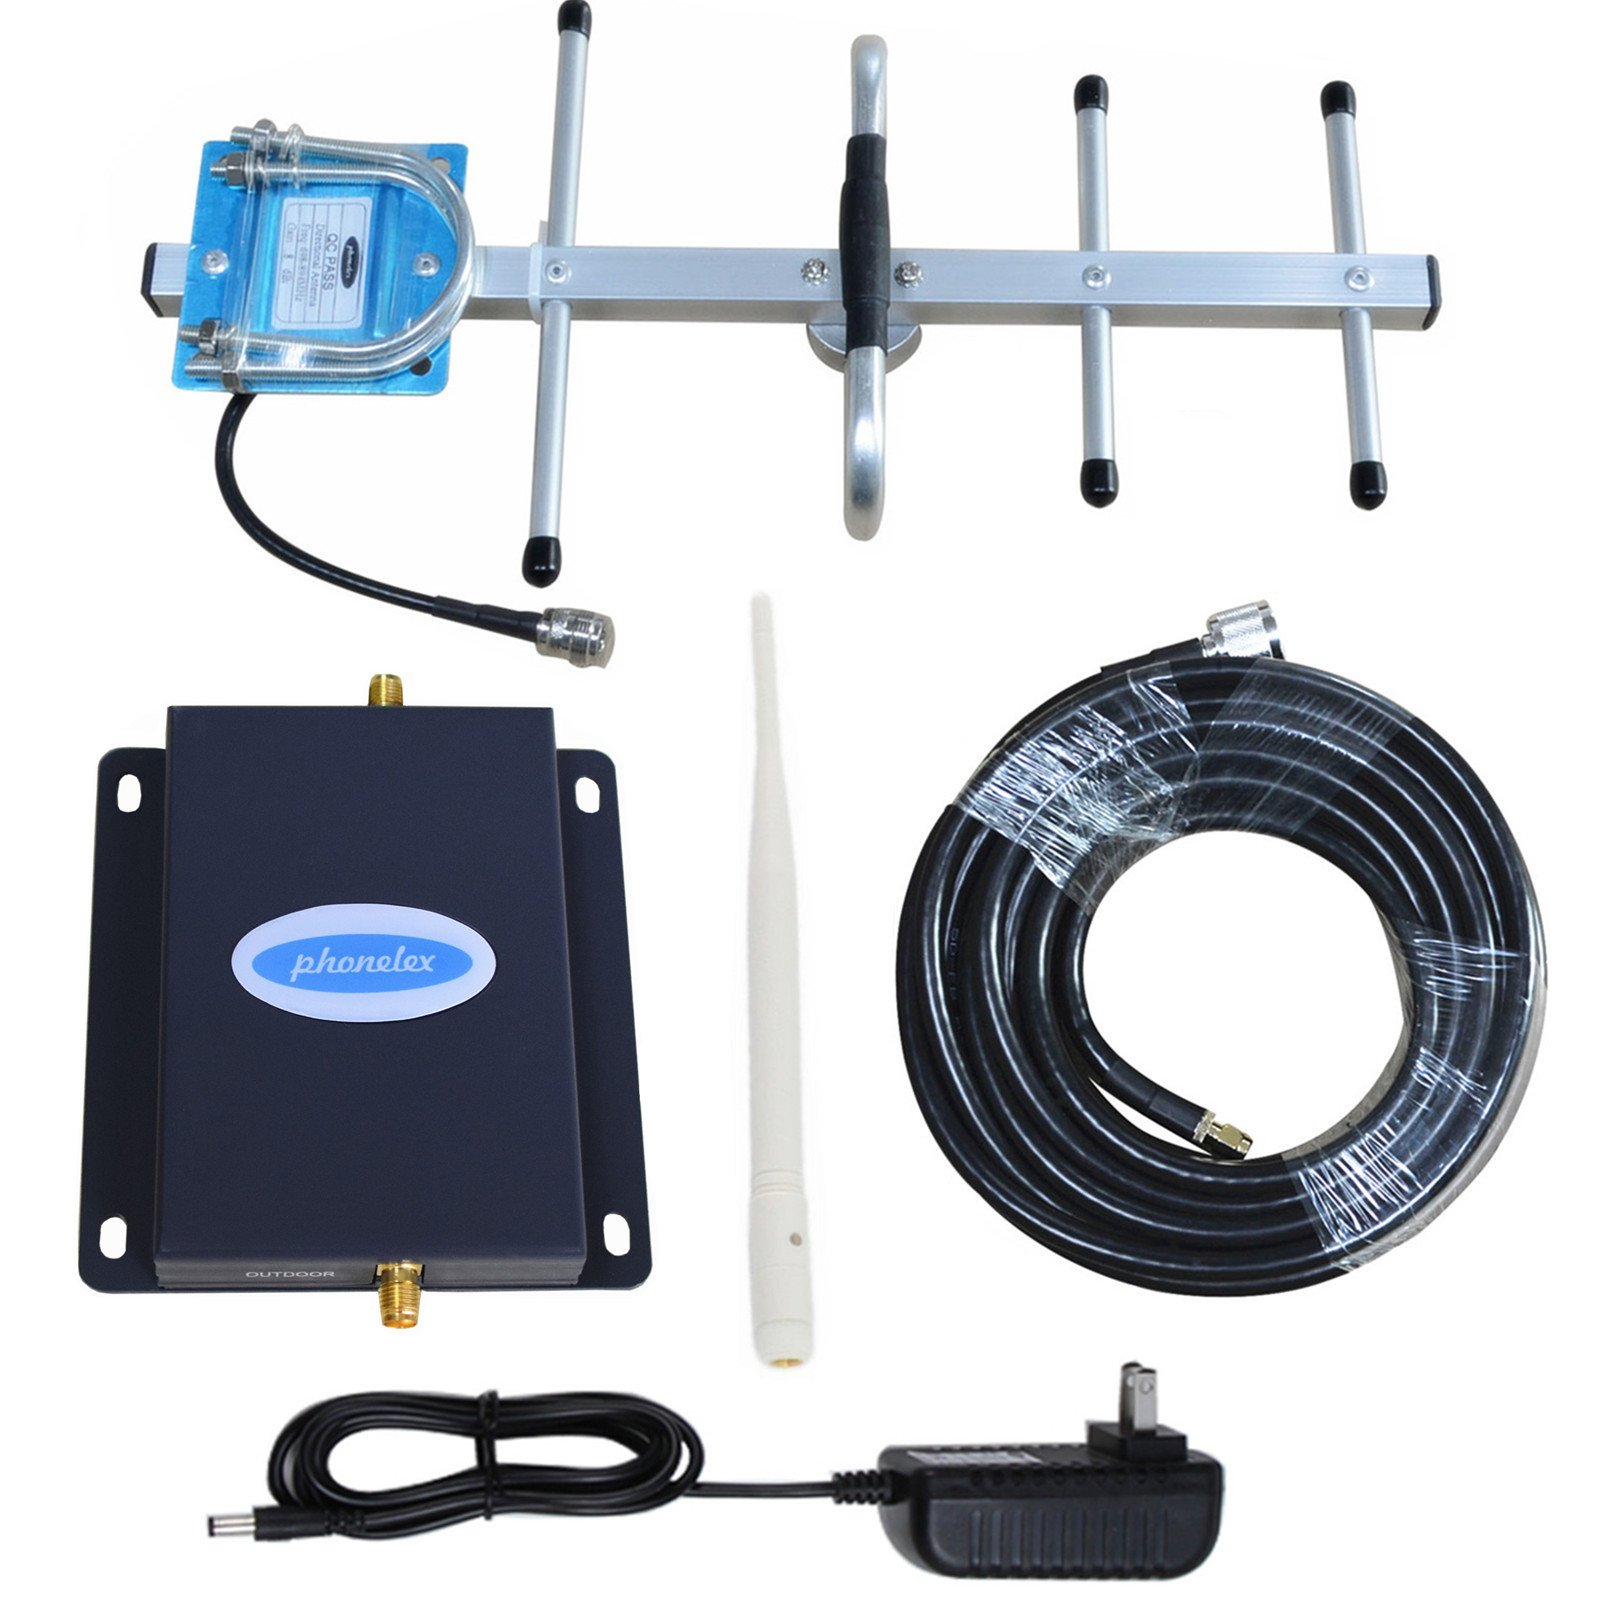 Cell Phone Signal Amplifier AT&T 4G LTE 700Mhz Band12/17 Phonelex Mobile Booster Repeater with Outside YaGi Directional and Inside Whip antennas Kits by phonelex (Image #1)